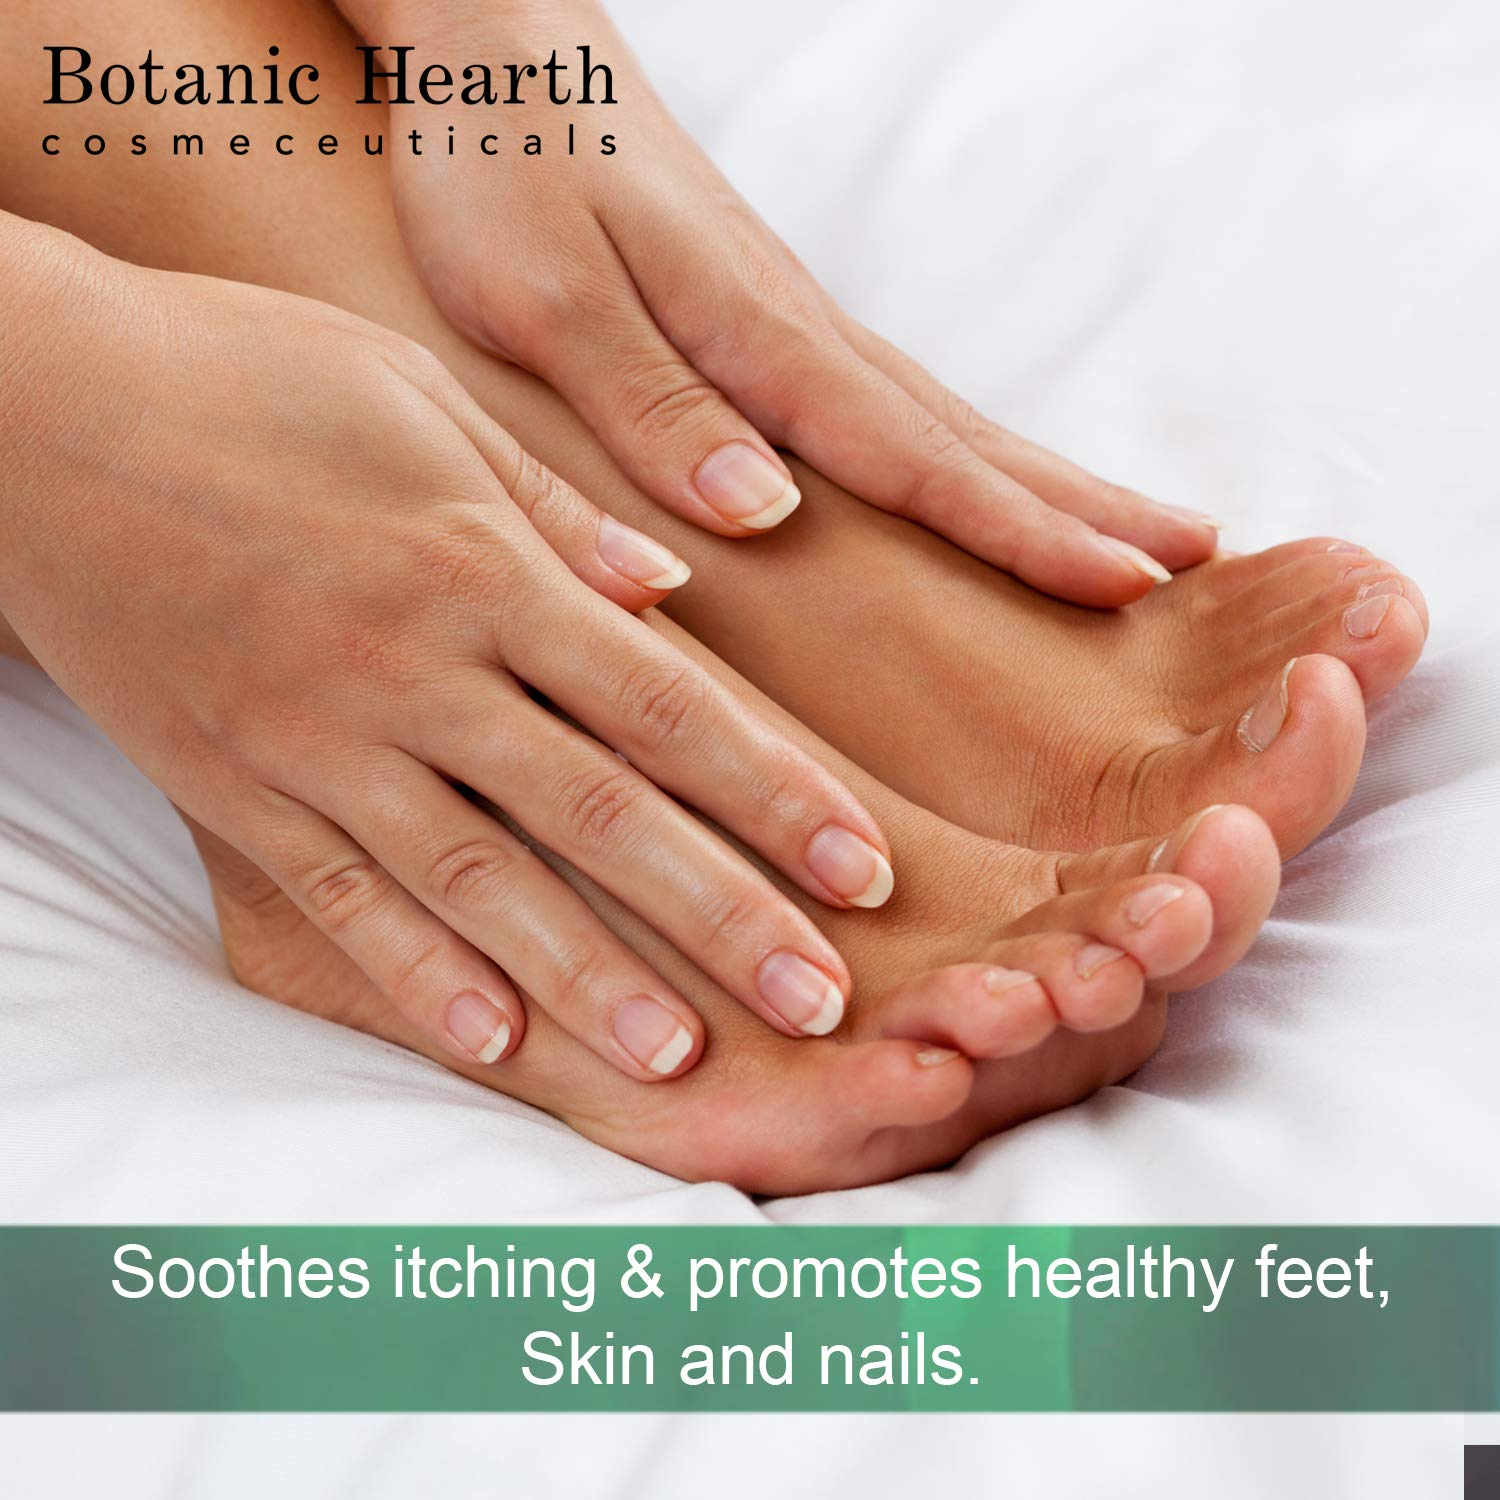 BOTANIC HEARTH Tea Tree Body Wash Helps Nail Fungus Athletes Foot Ringworms Jock Itch Acne Eczema